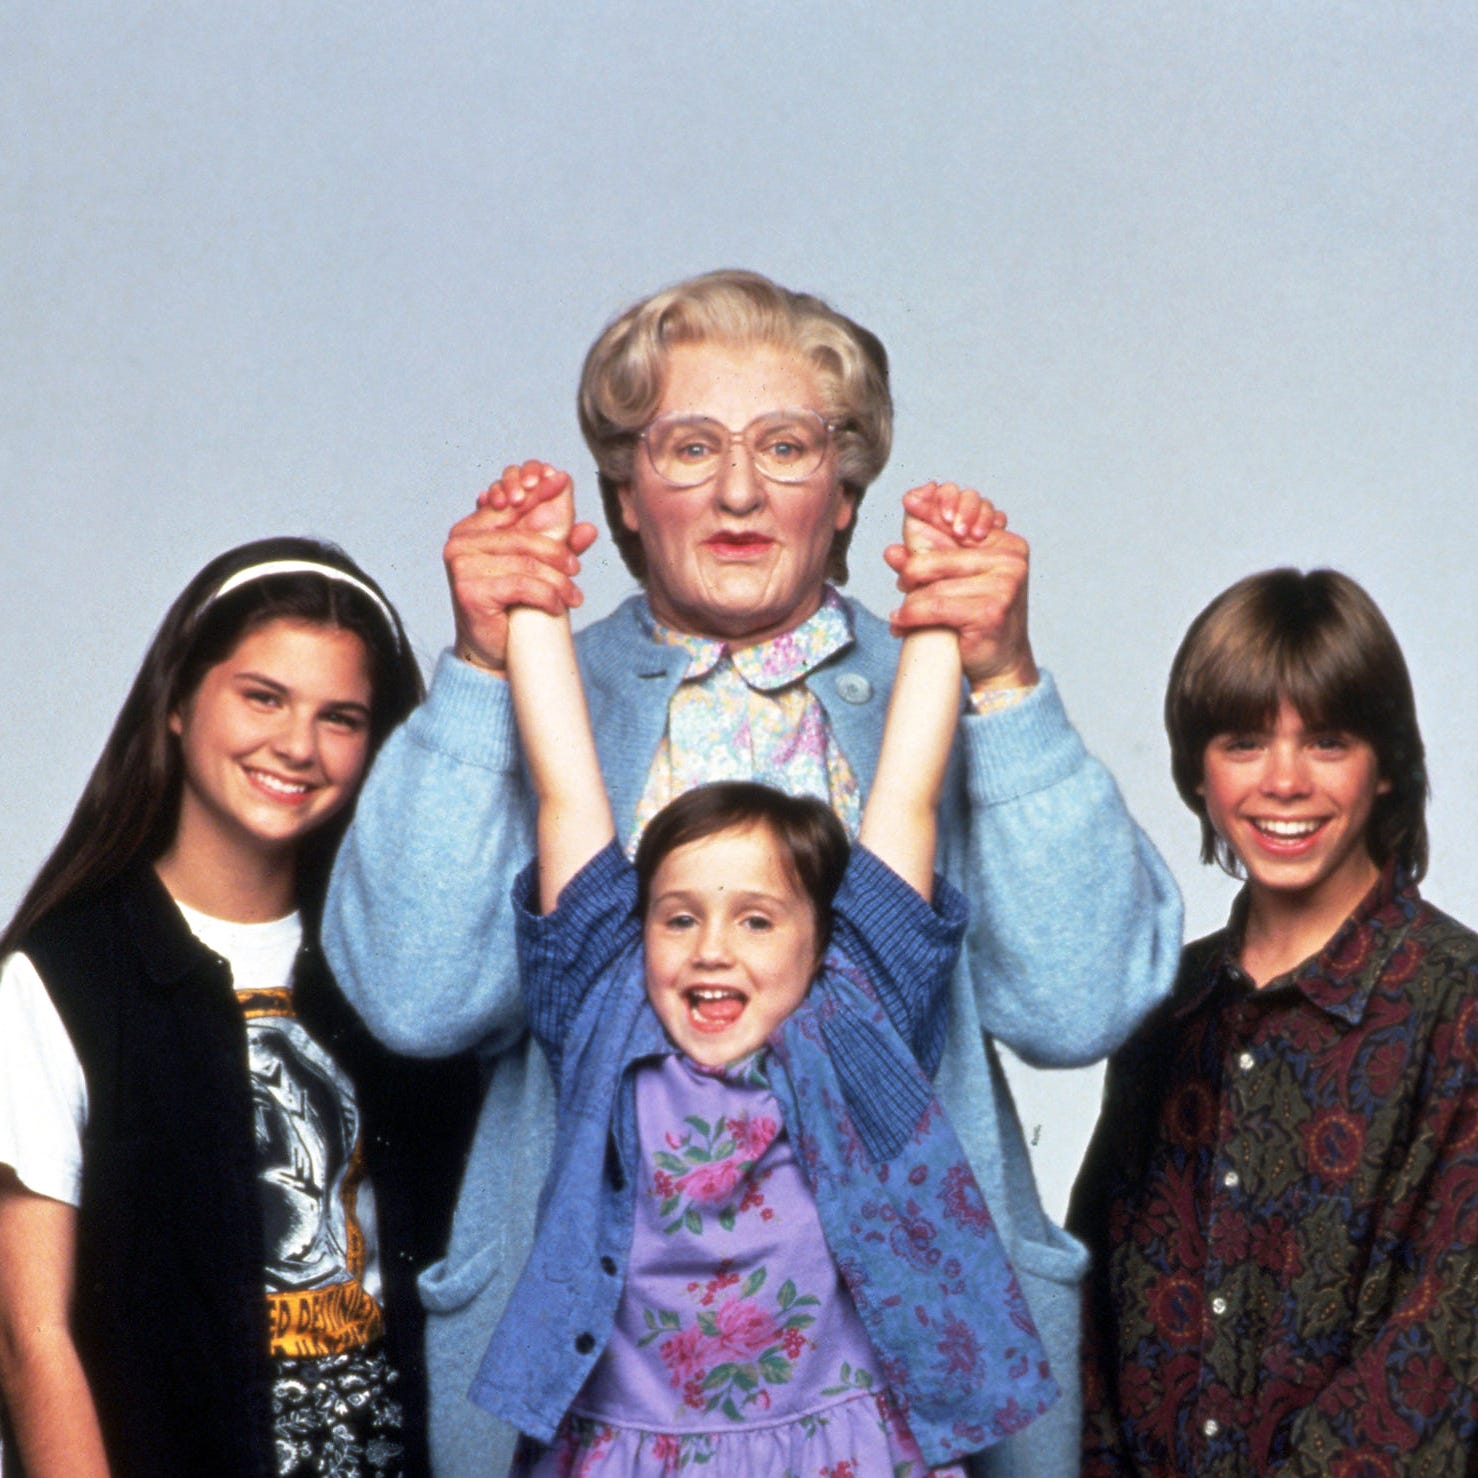 "Lisa Jakub, left, Robin Williams, Mara Wilson and Matthew Lawrence in a publicity still for the 1993 motion picture ""Mrs. Doubtfire."" CREDIT: Rex Features via AP Images  ORG XMIT: 390905ca [Via MerlinFTP Drop]"